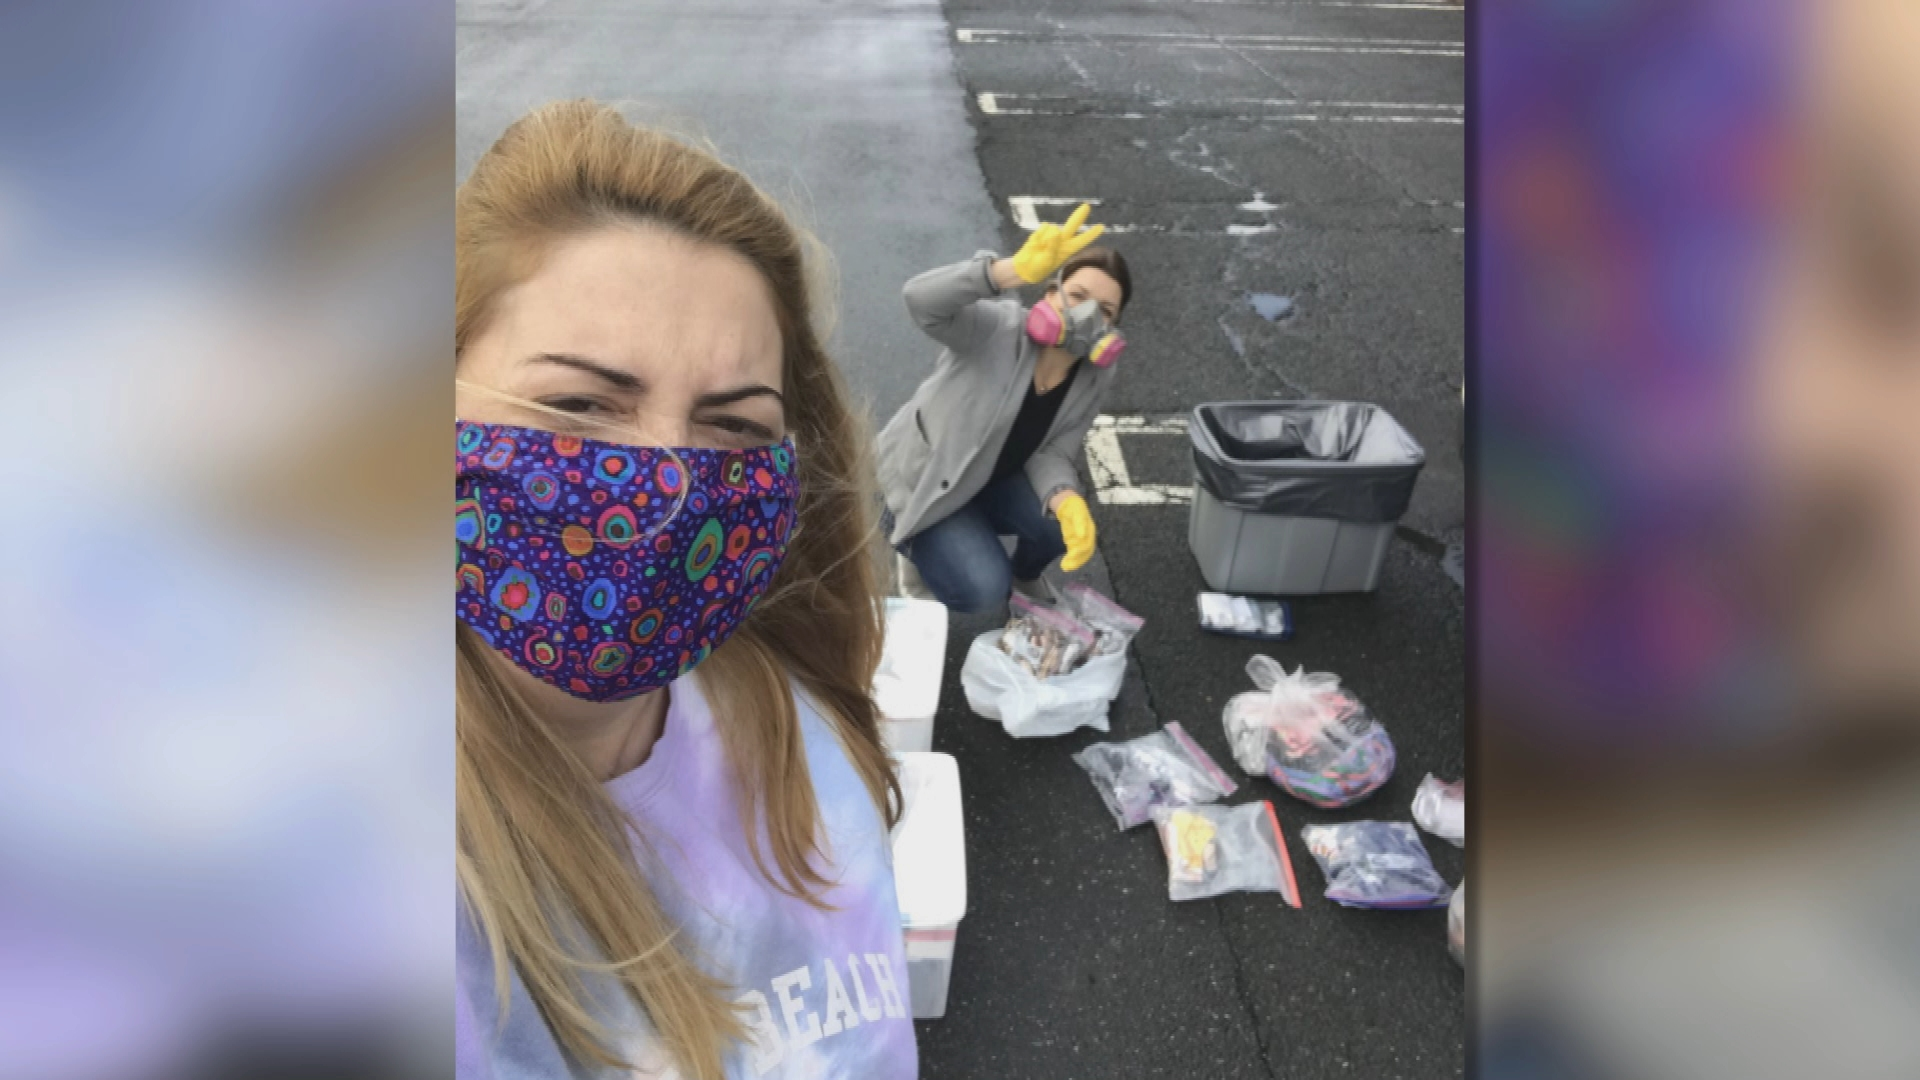 Realizing a need for cloth masks during COVID-19, Marie Yvon turned to social media to network with local crafters and sew mask for frontline workers.